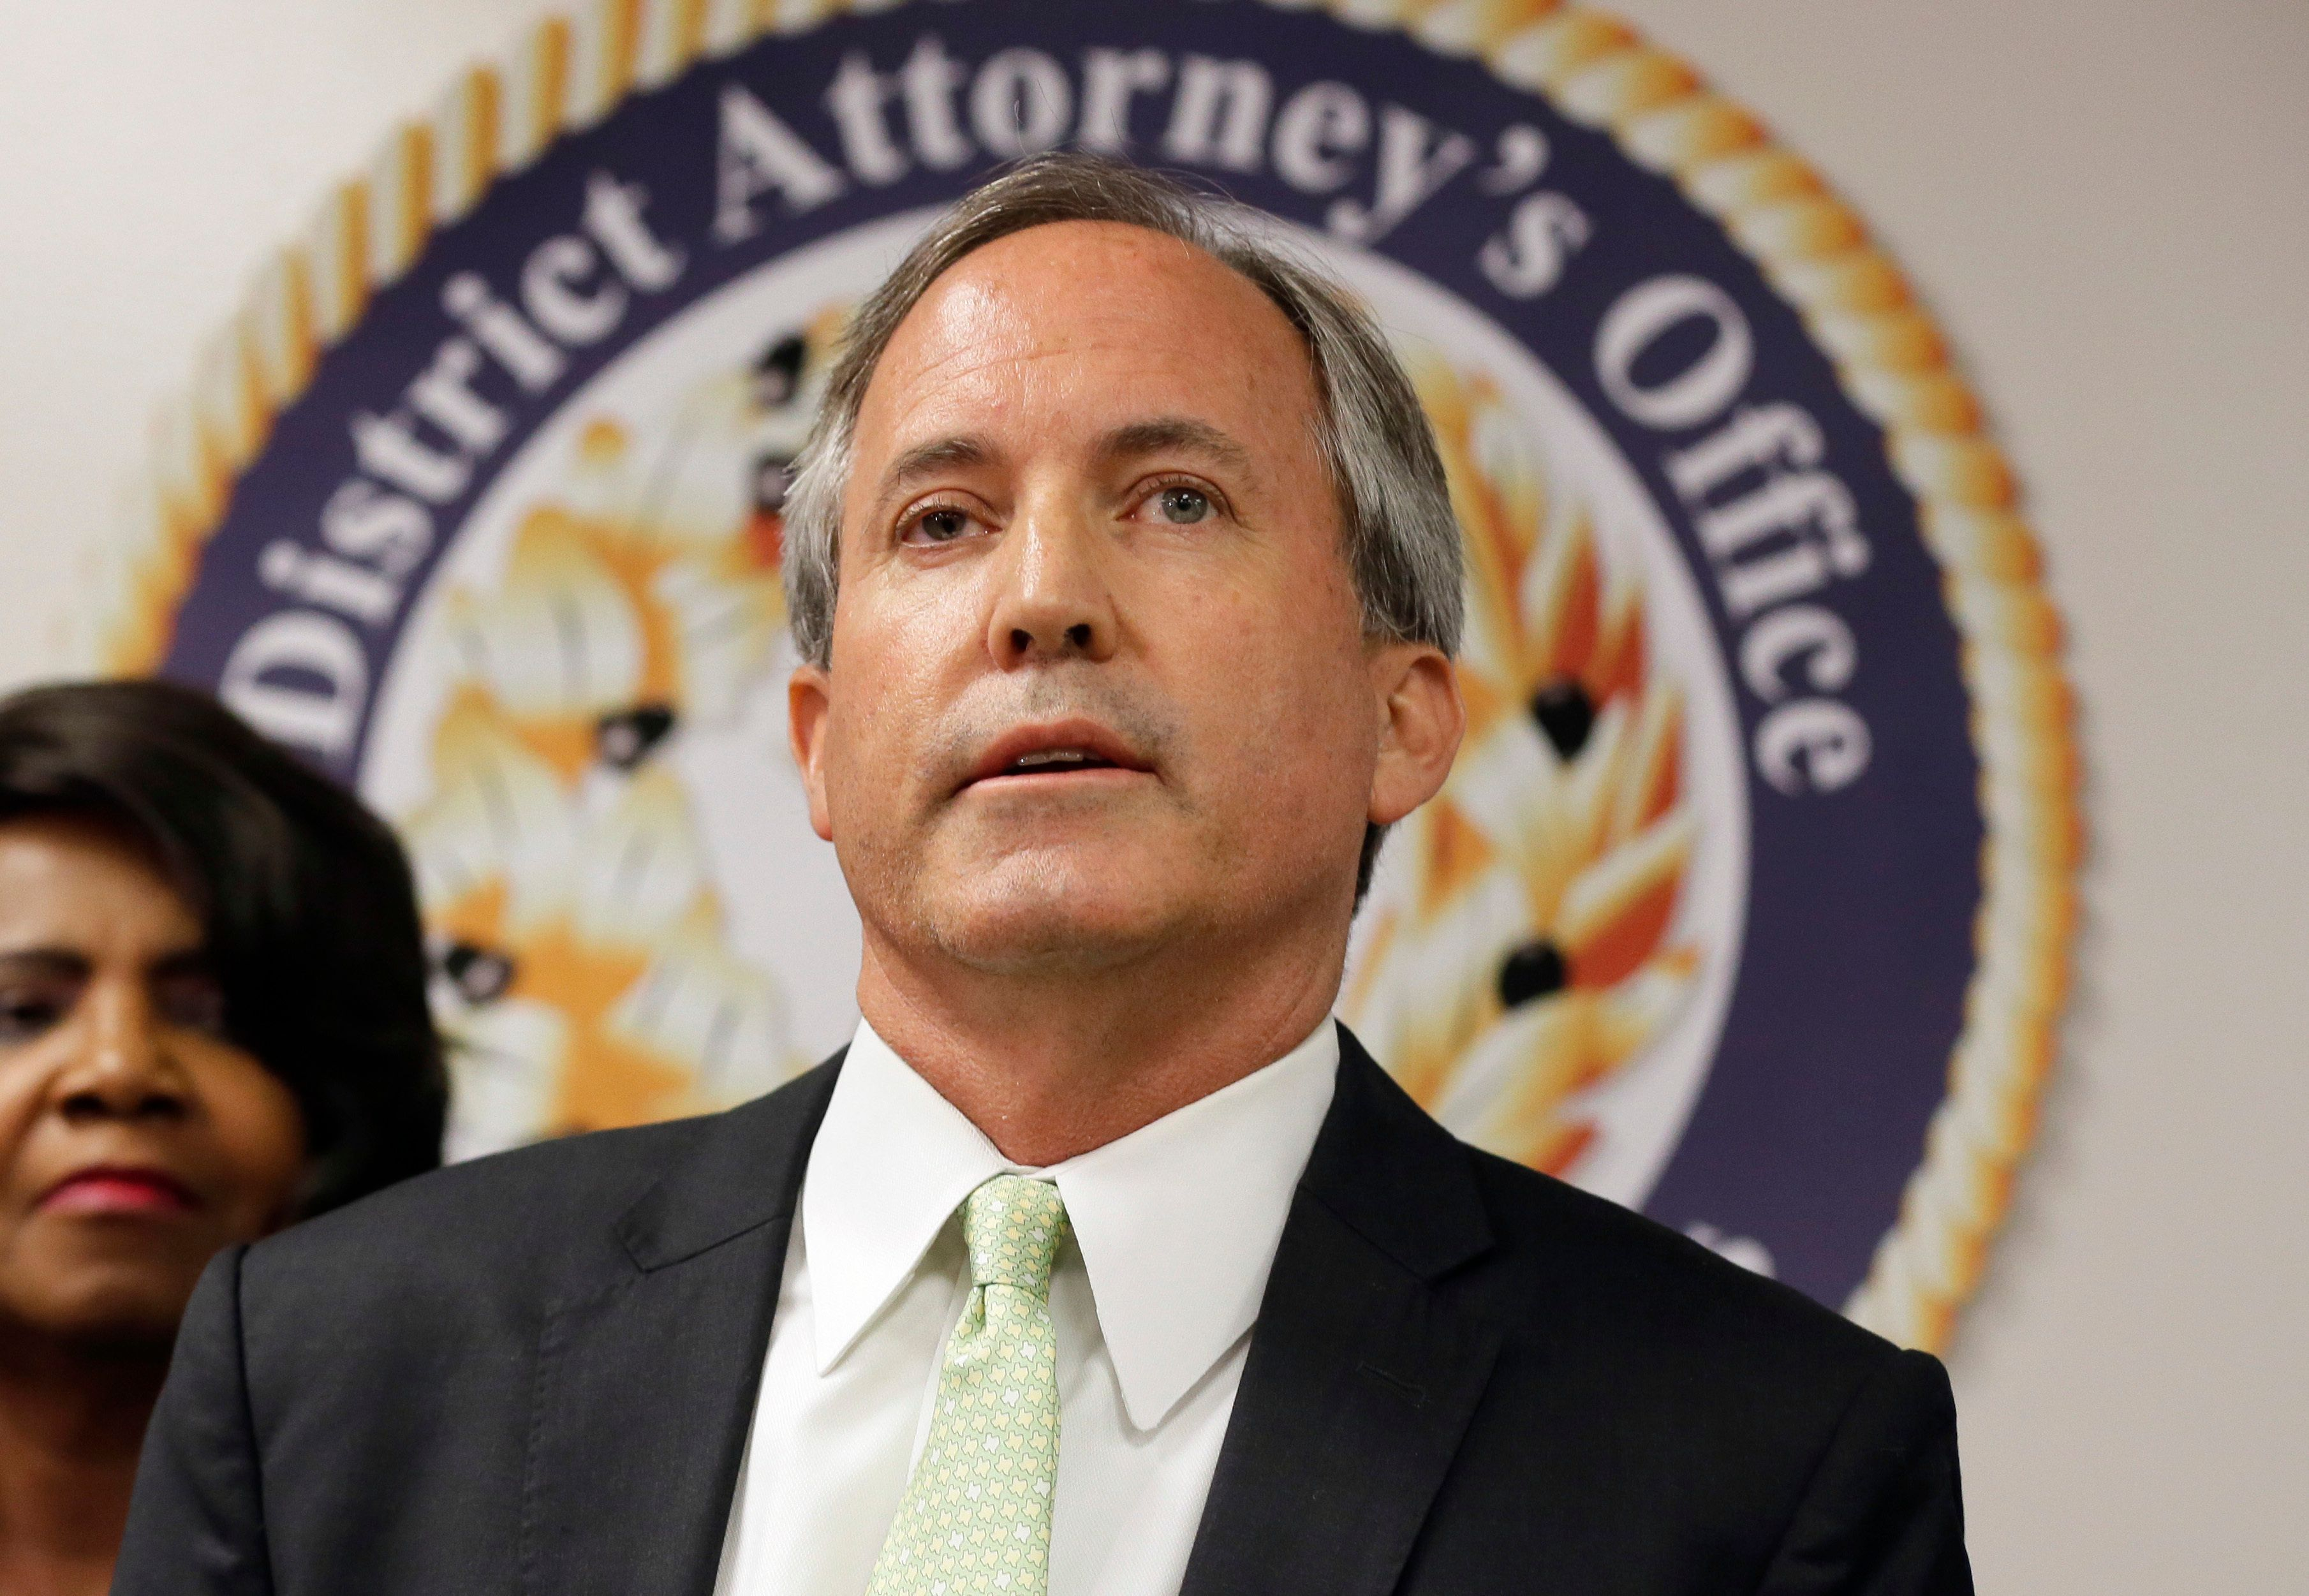 Paxton, seen in 2017,hasdenied wrongdoing and refused calls for his resignation.